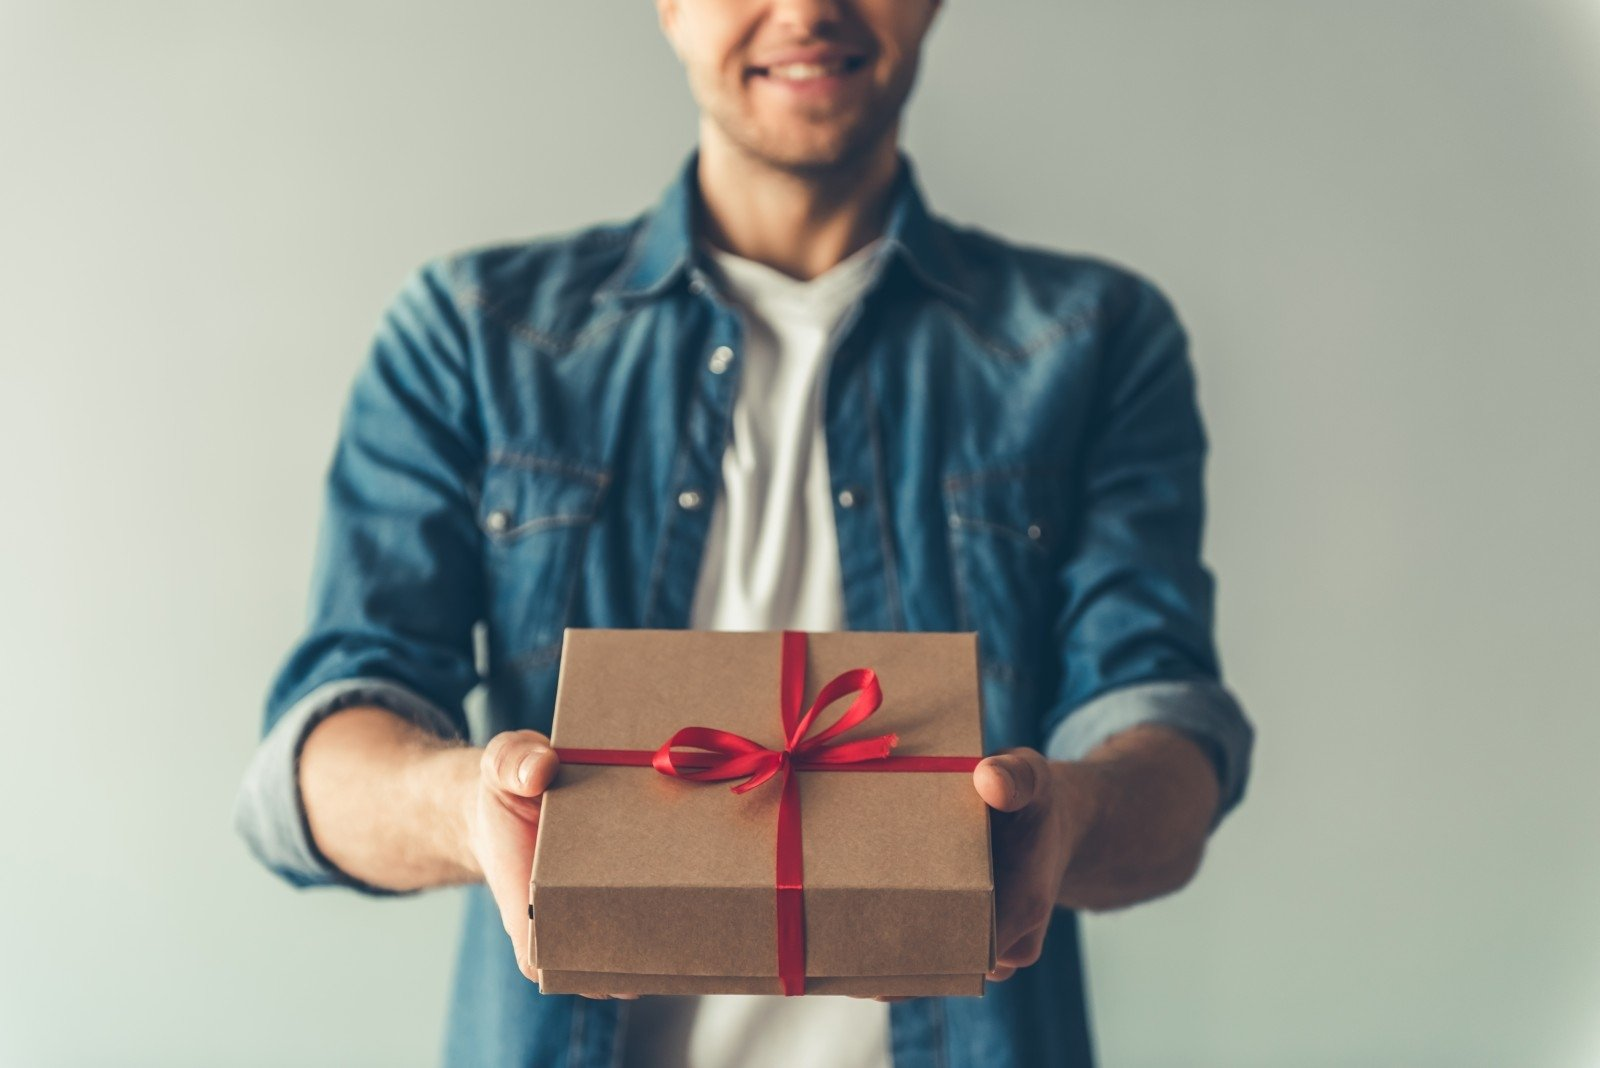 Christmas gift trends: instead of things giving experiences - EN.DELFI